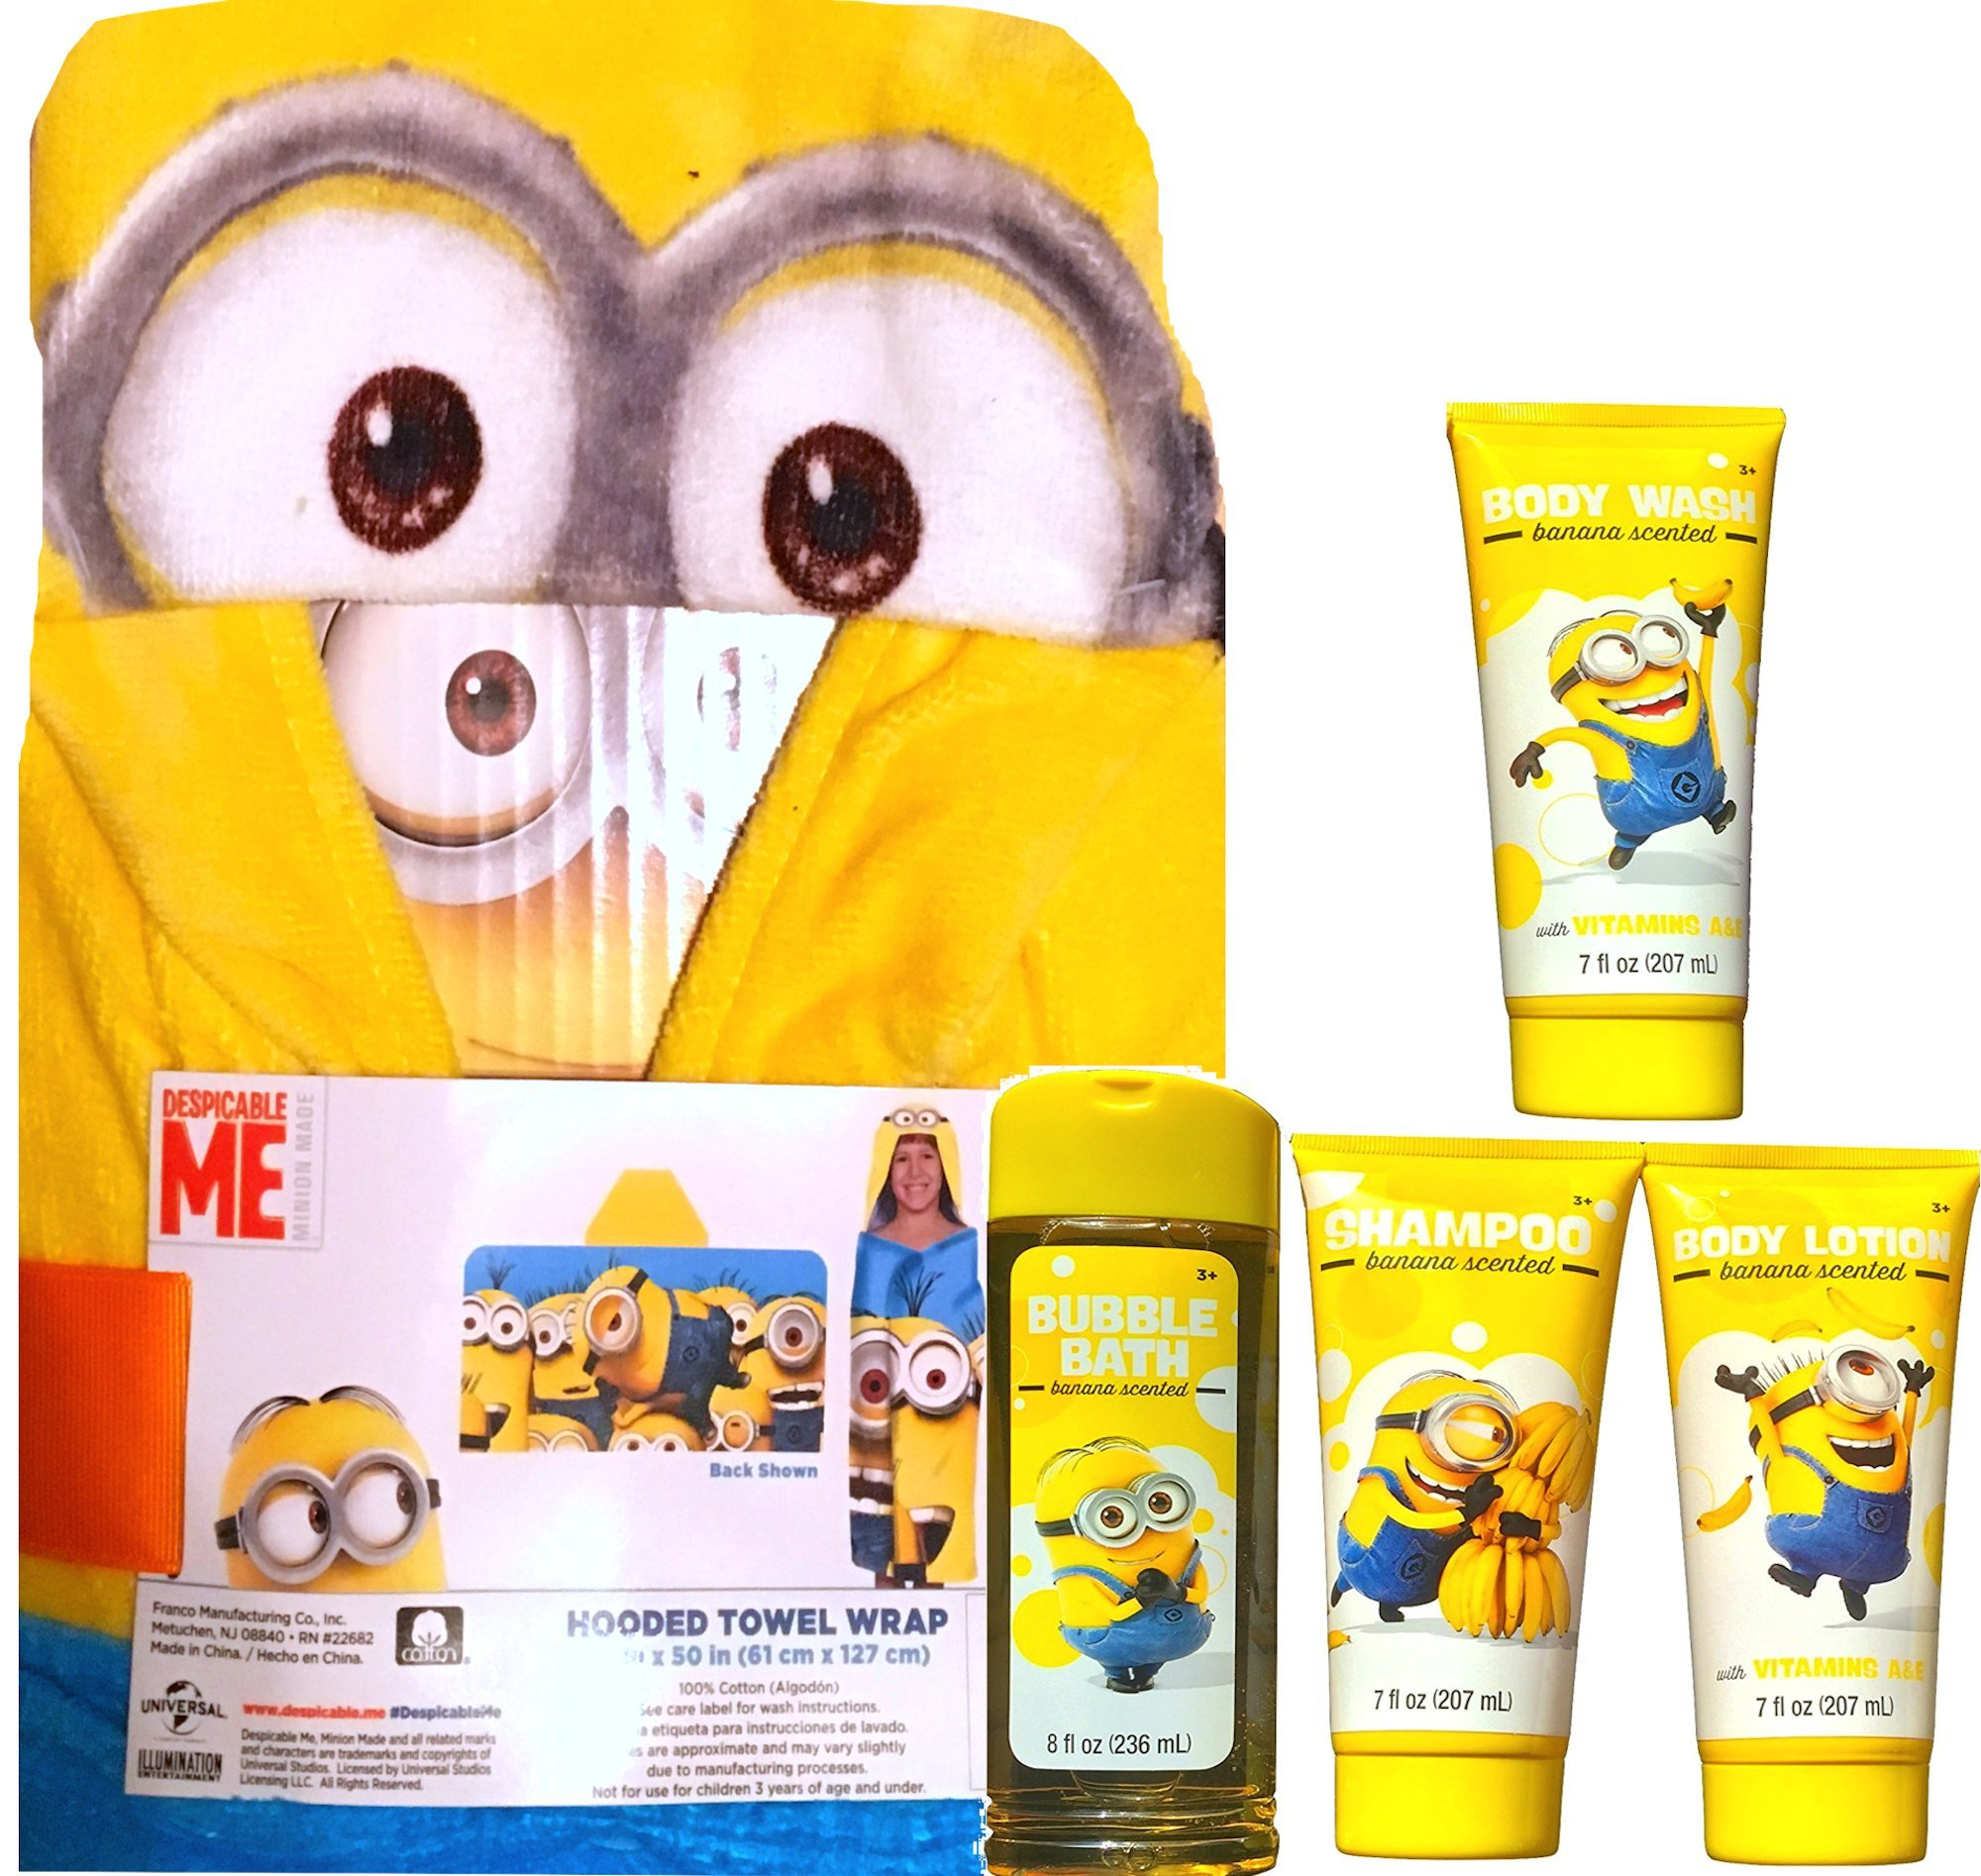 Minions Movie Exclusive Hooded Towel Wrap Includes Minion Bannana Scented Bubble Bath , Minion Shampoo, Minion Body Wash and Minion Body Lotion Gift SET